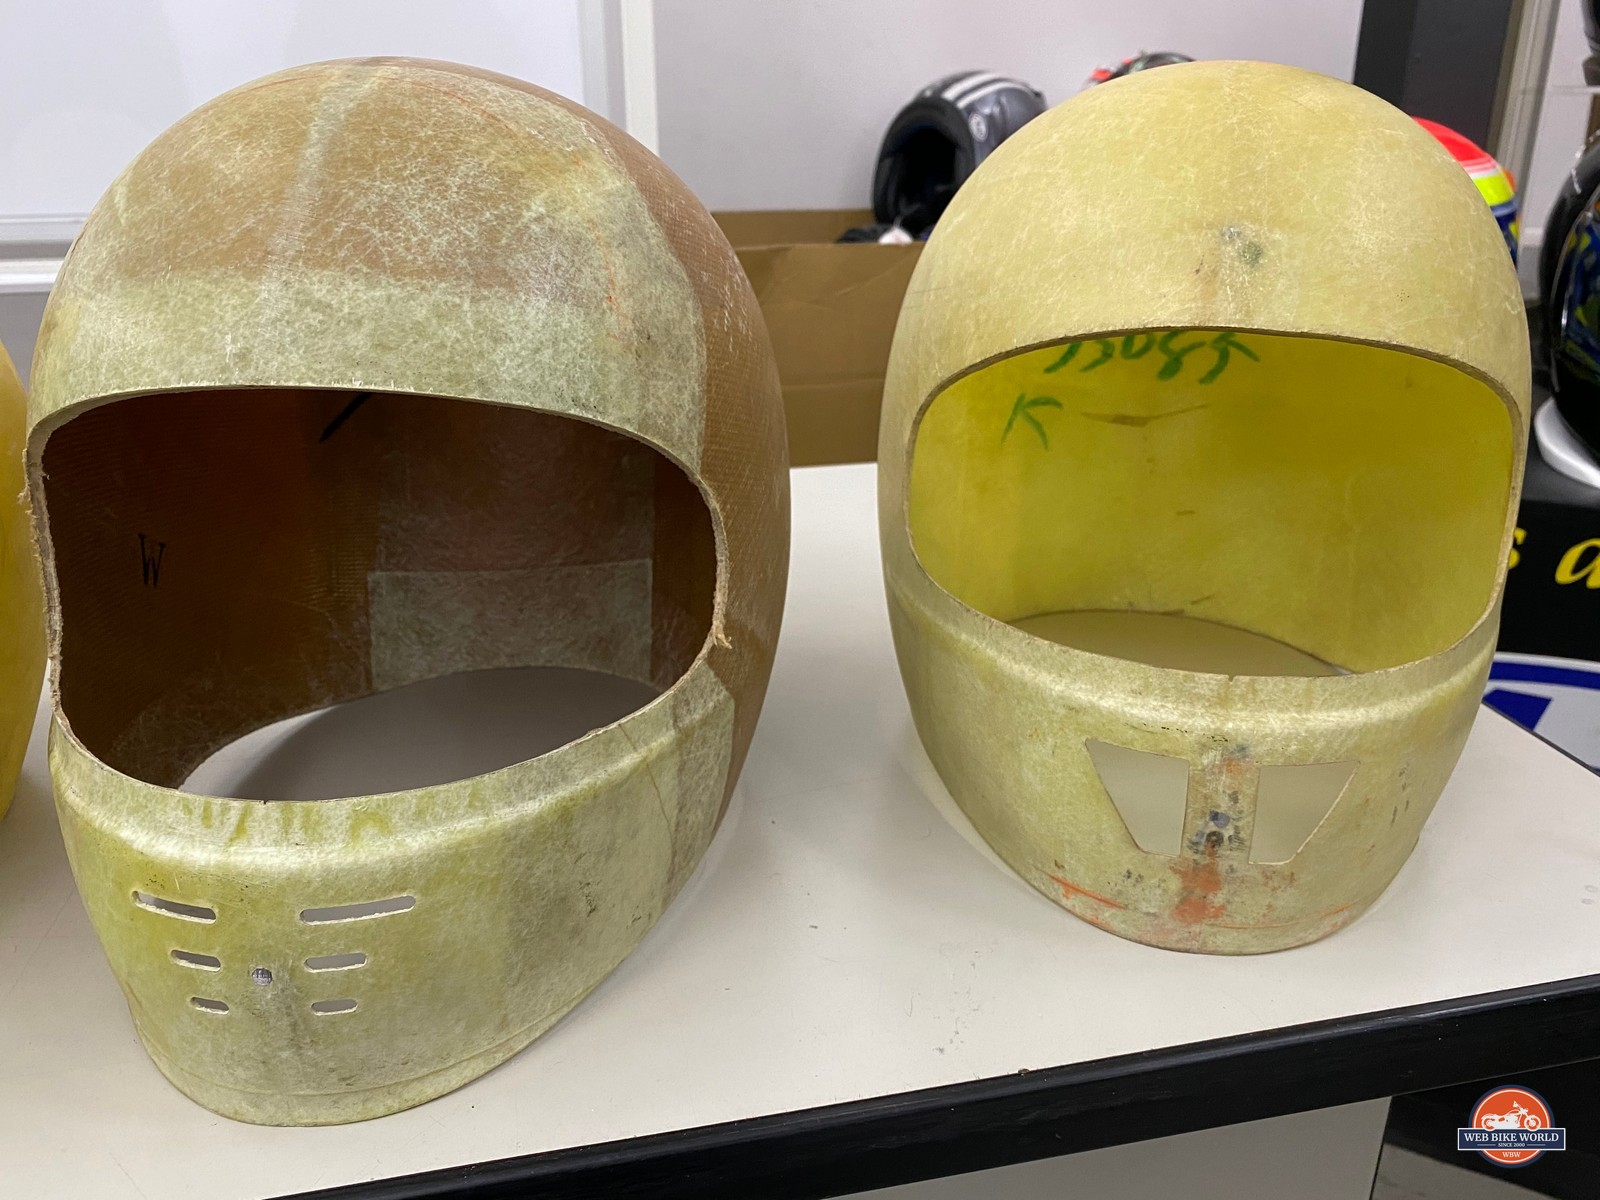 The original Arai shell is on the right and their first Kevlar shell on the left.